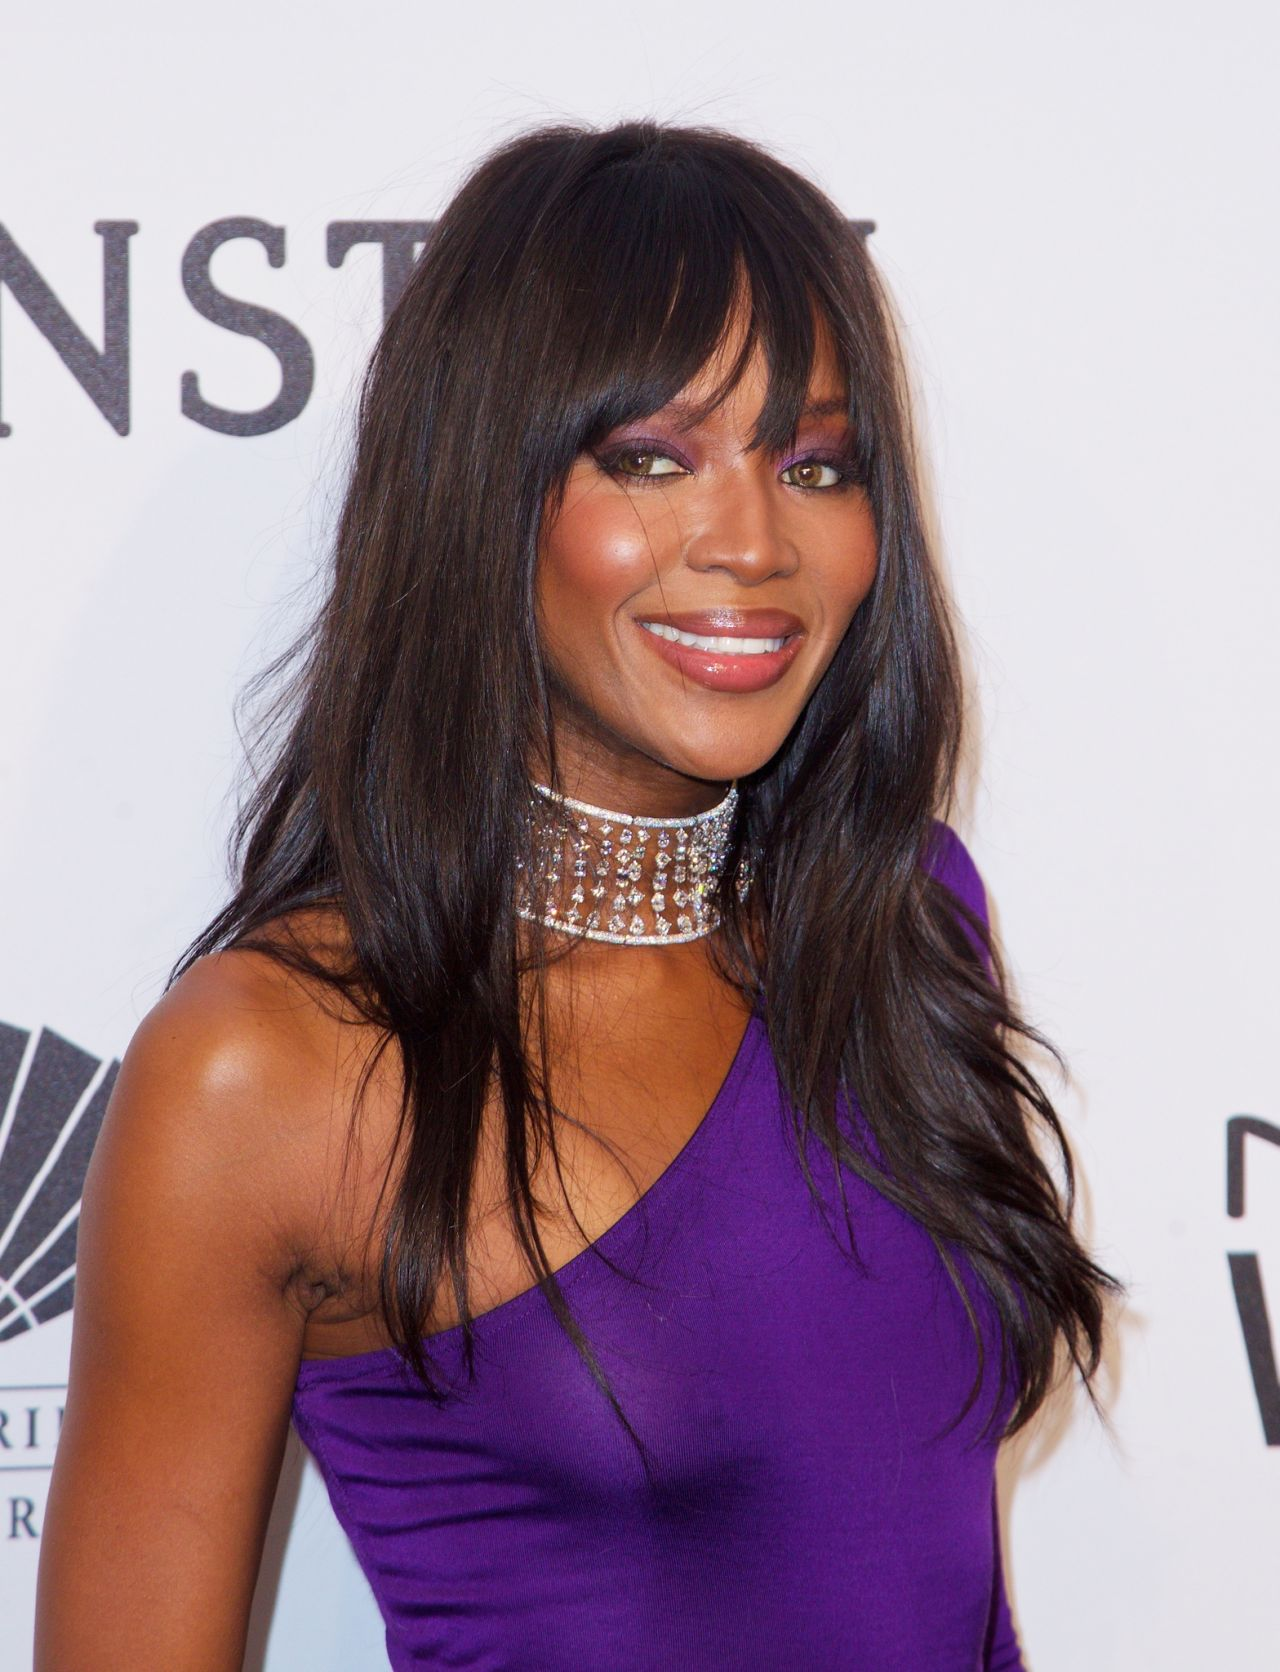 naomi-campbell-see-through-to-nipple-amfar-new-york-4